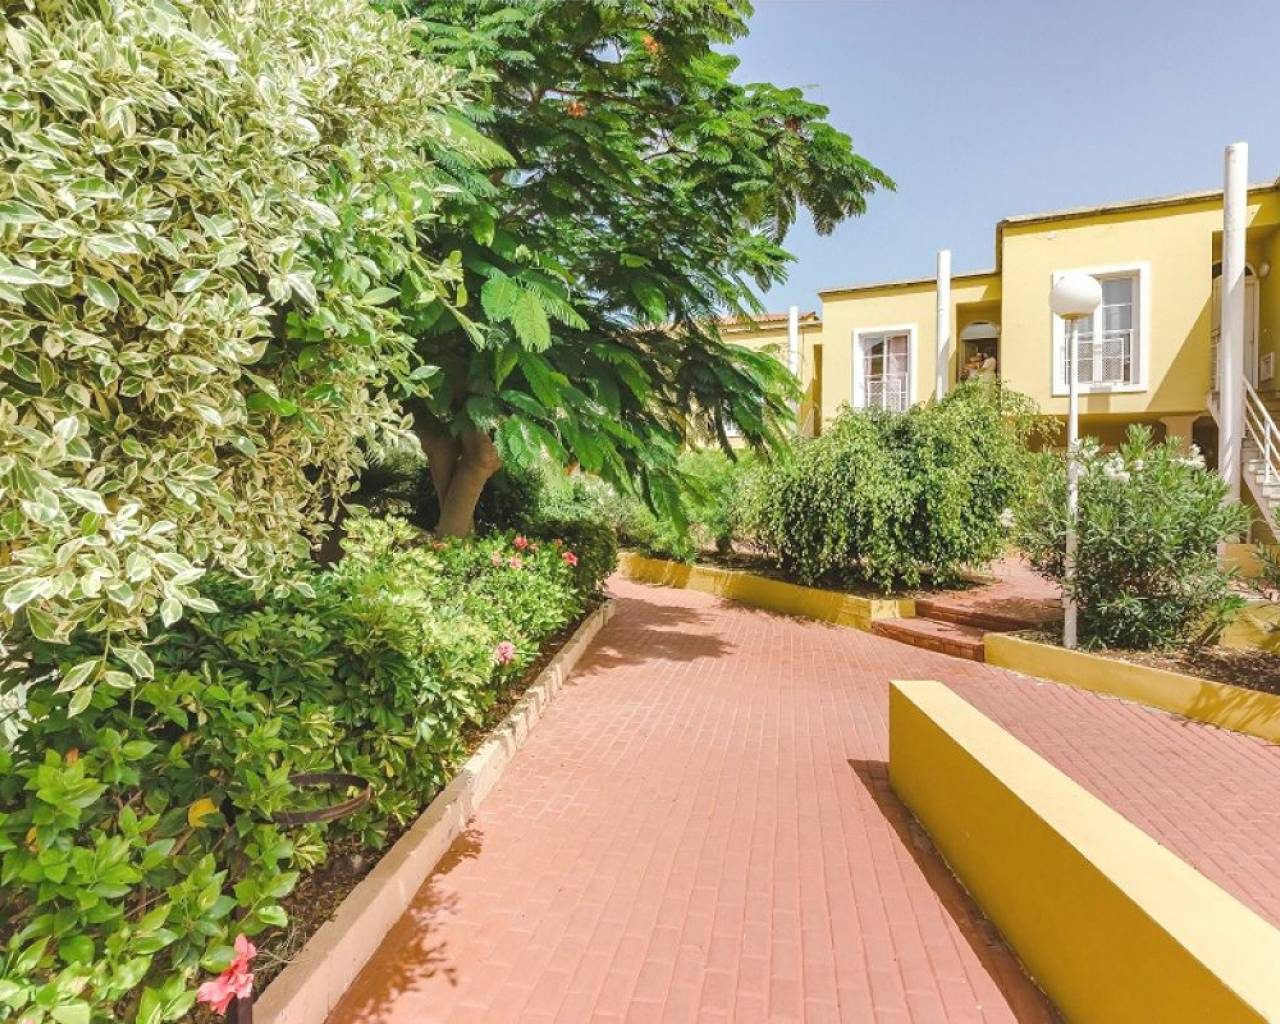 Apartment - Short term rental - Tenerife - Costa Adeje